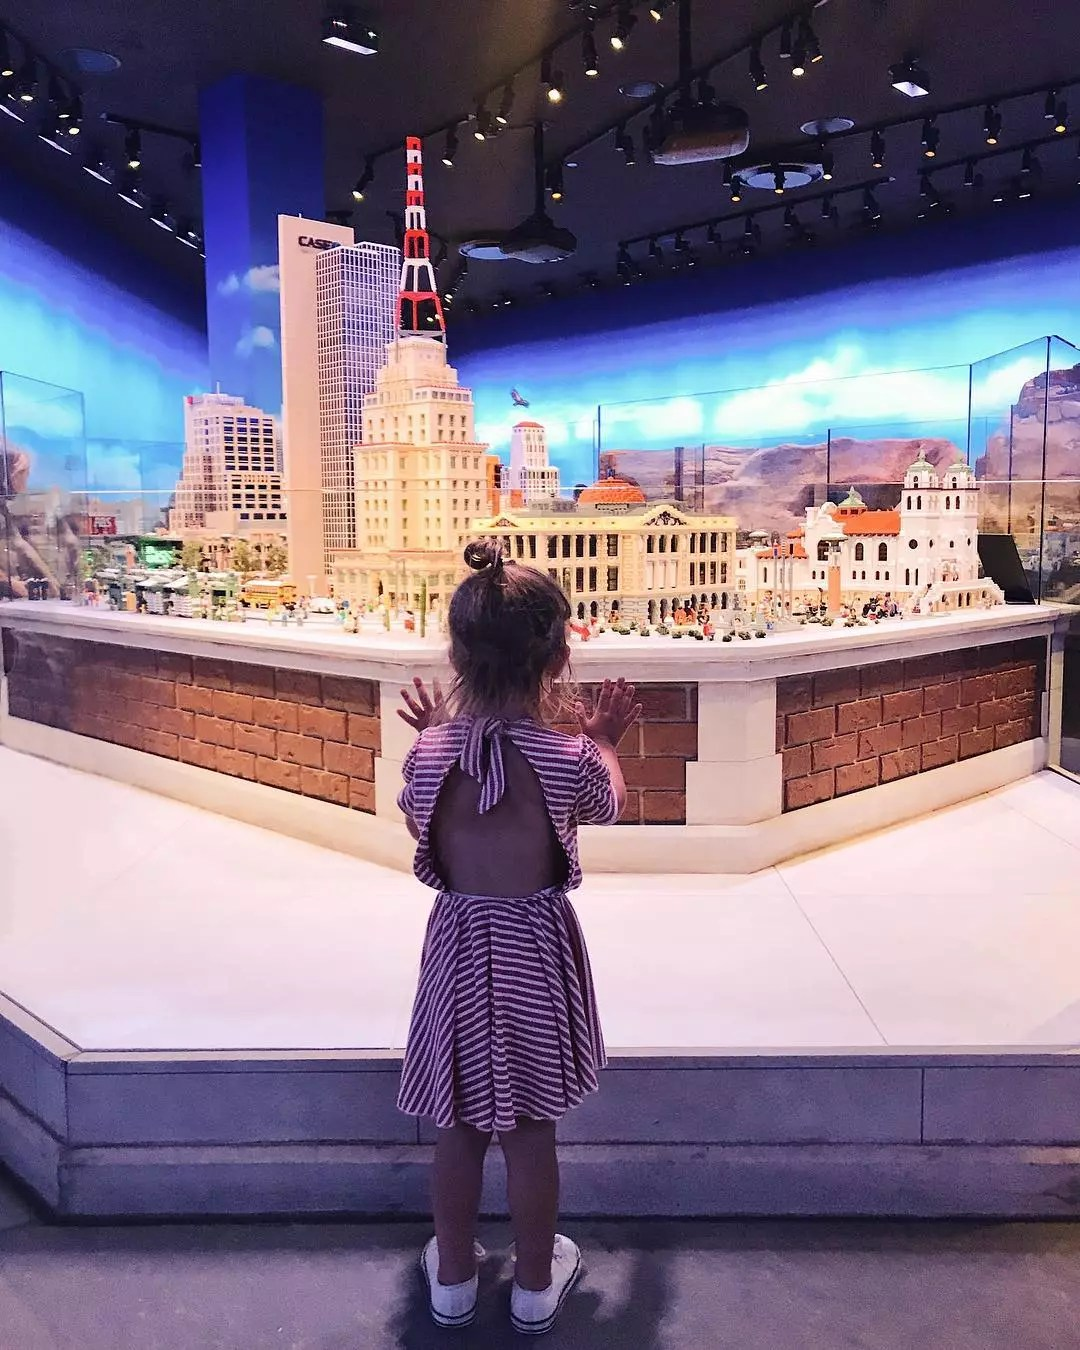 Little Girl Looking at a Downtown Tempe Made of LEGO. Photo by Instagram user @kcstauffer